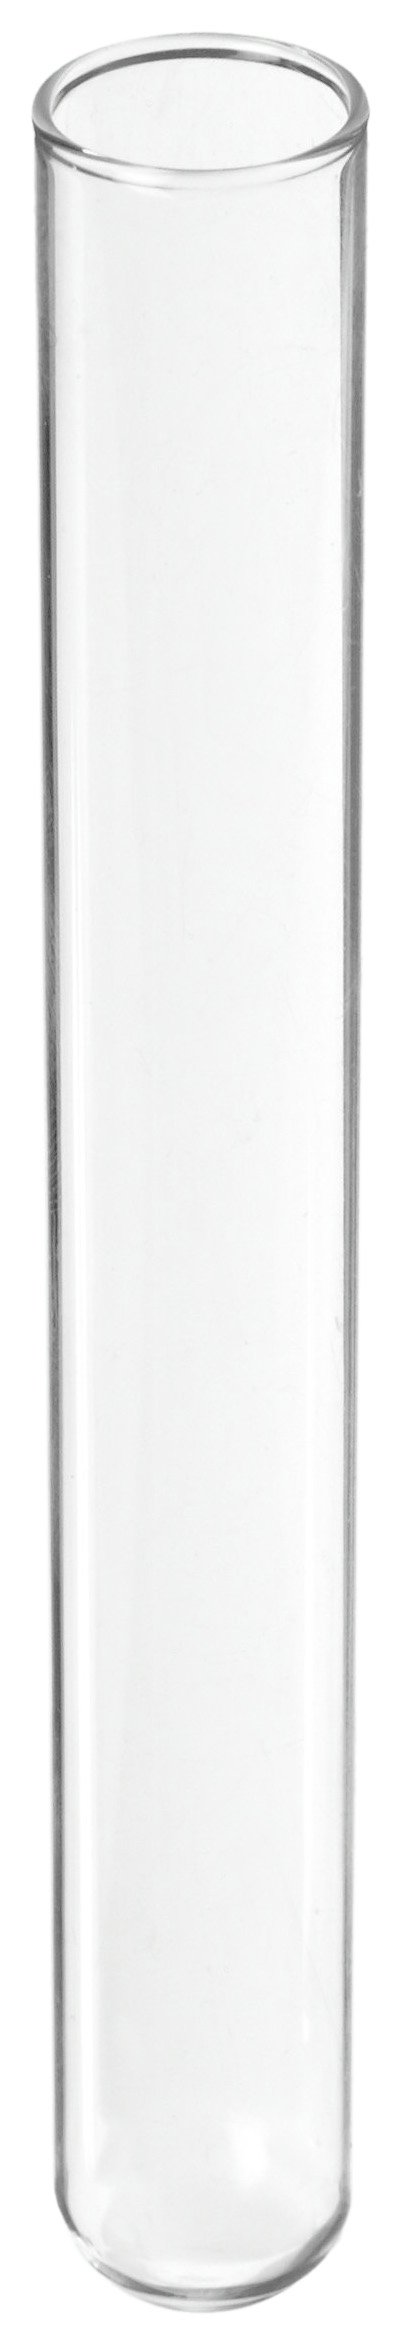 Kimble 73500-650 N-51A Borosilicate Glass 1mL Disposable Culture Tube, with Rim Top, Clear (Case of 1000)